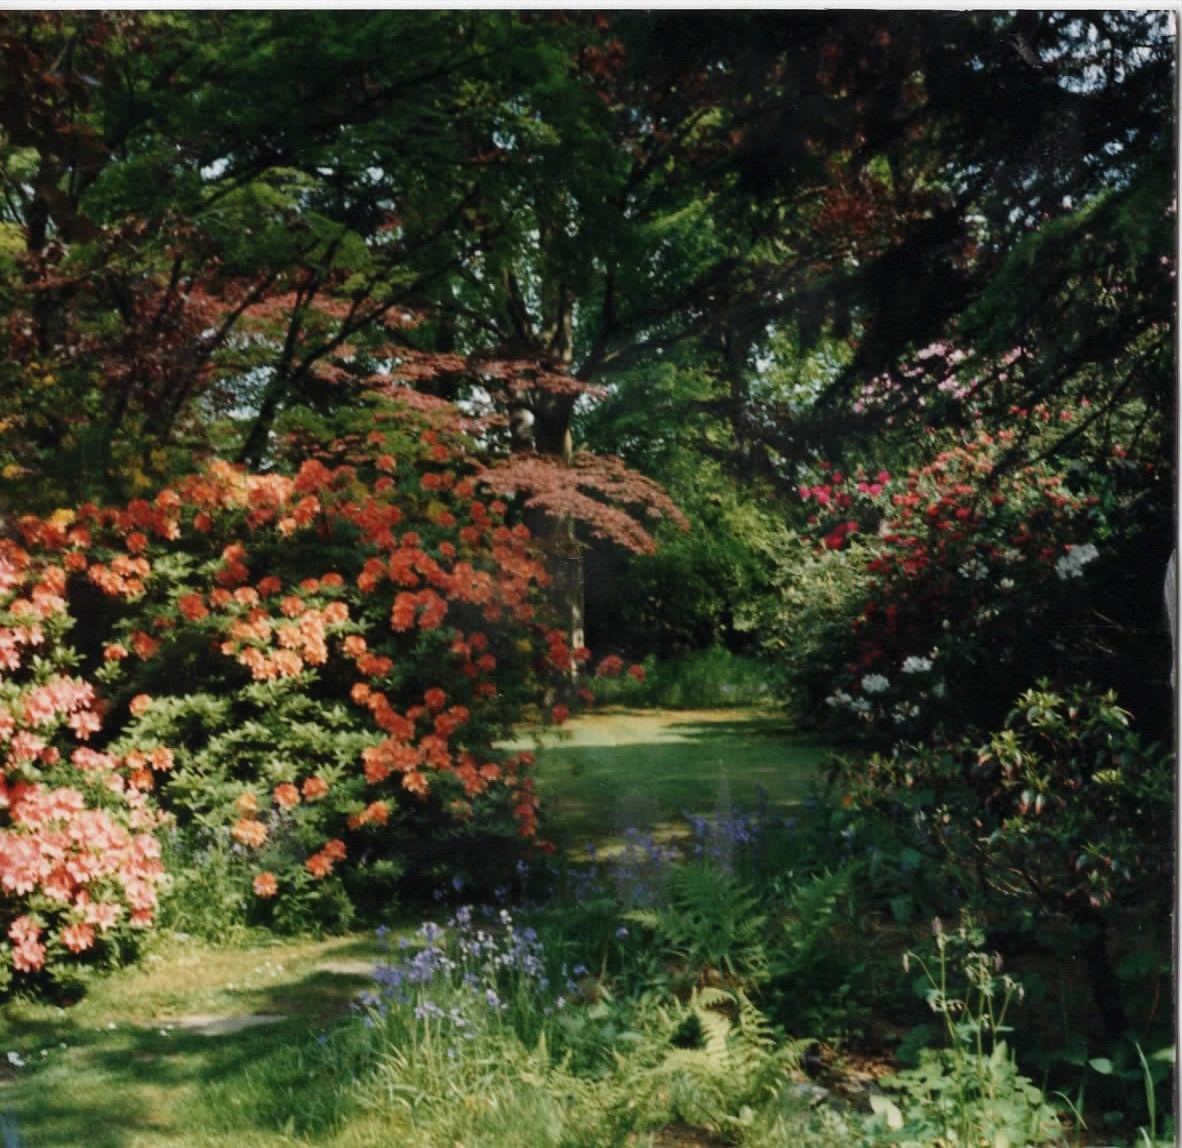 This garden was created around 1910 by the horticulturist owner of the big house next door. He brought many rare shrubs and  trees back from China, including rhododendrons and azaleas.